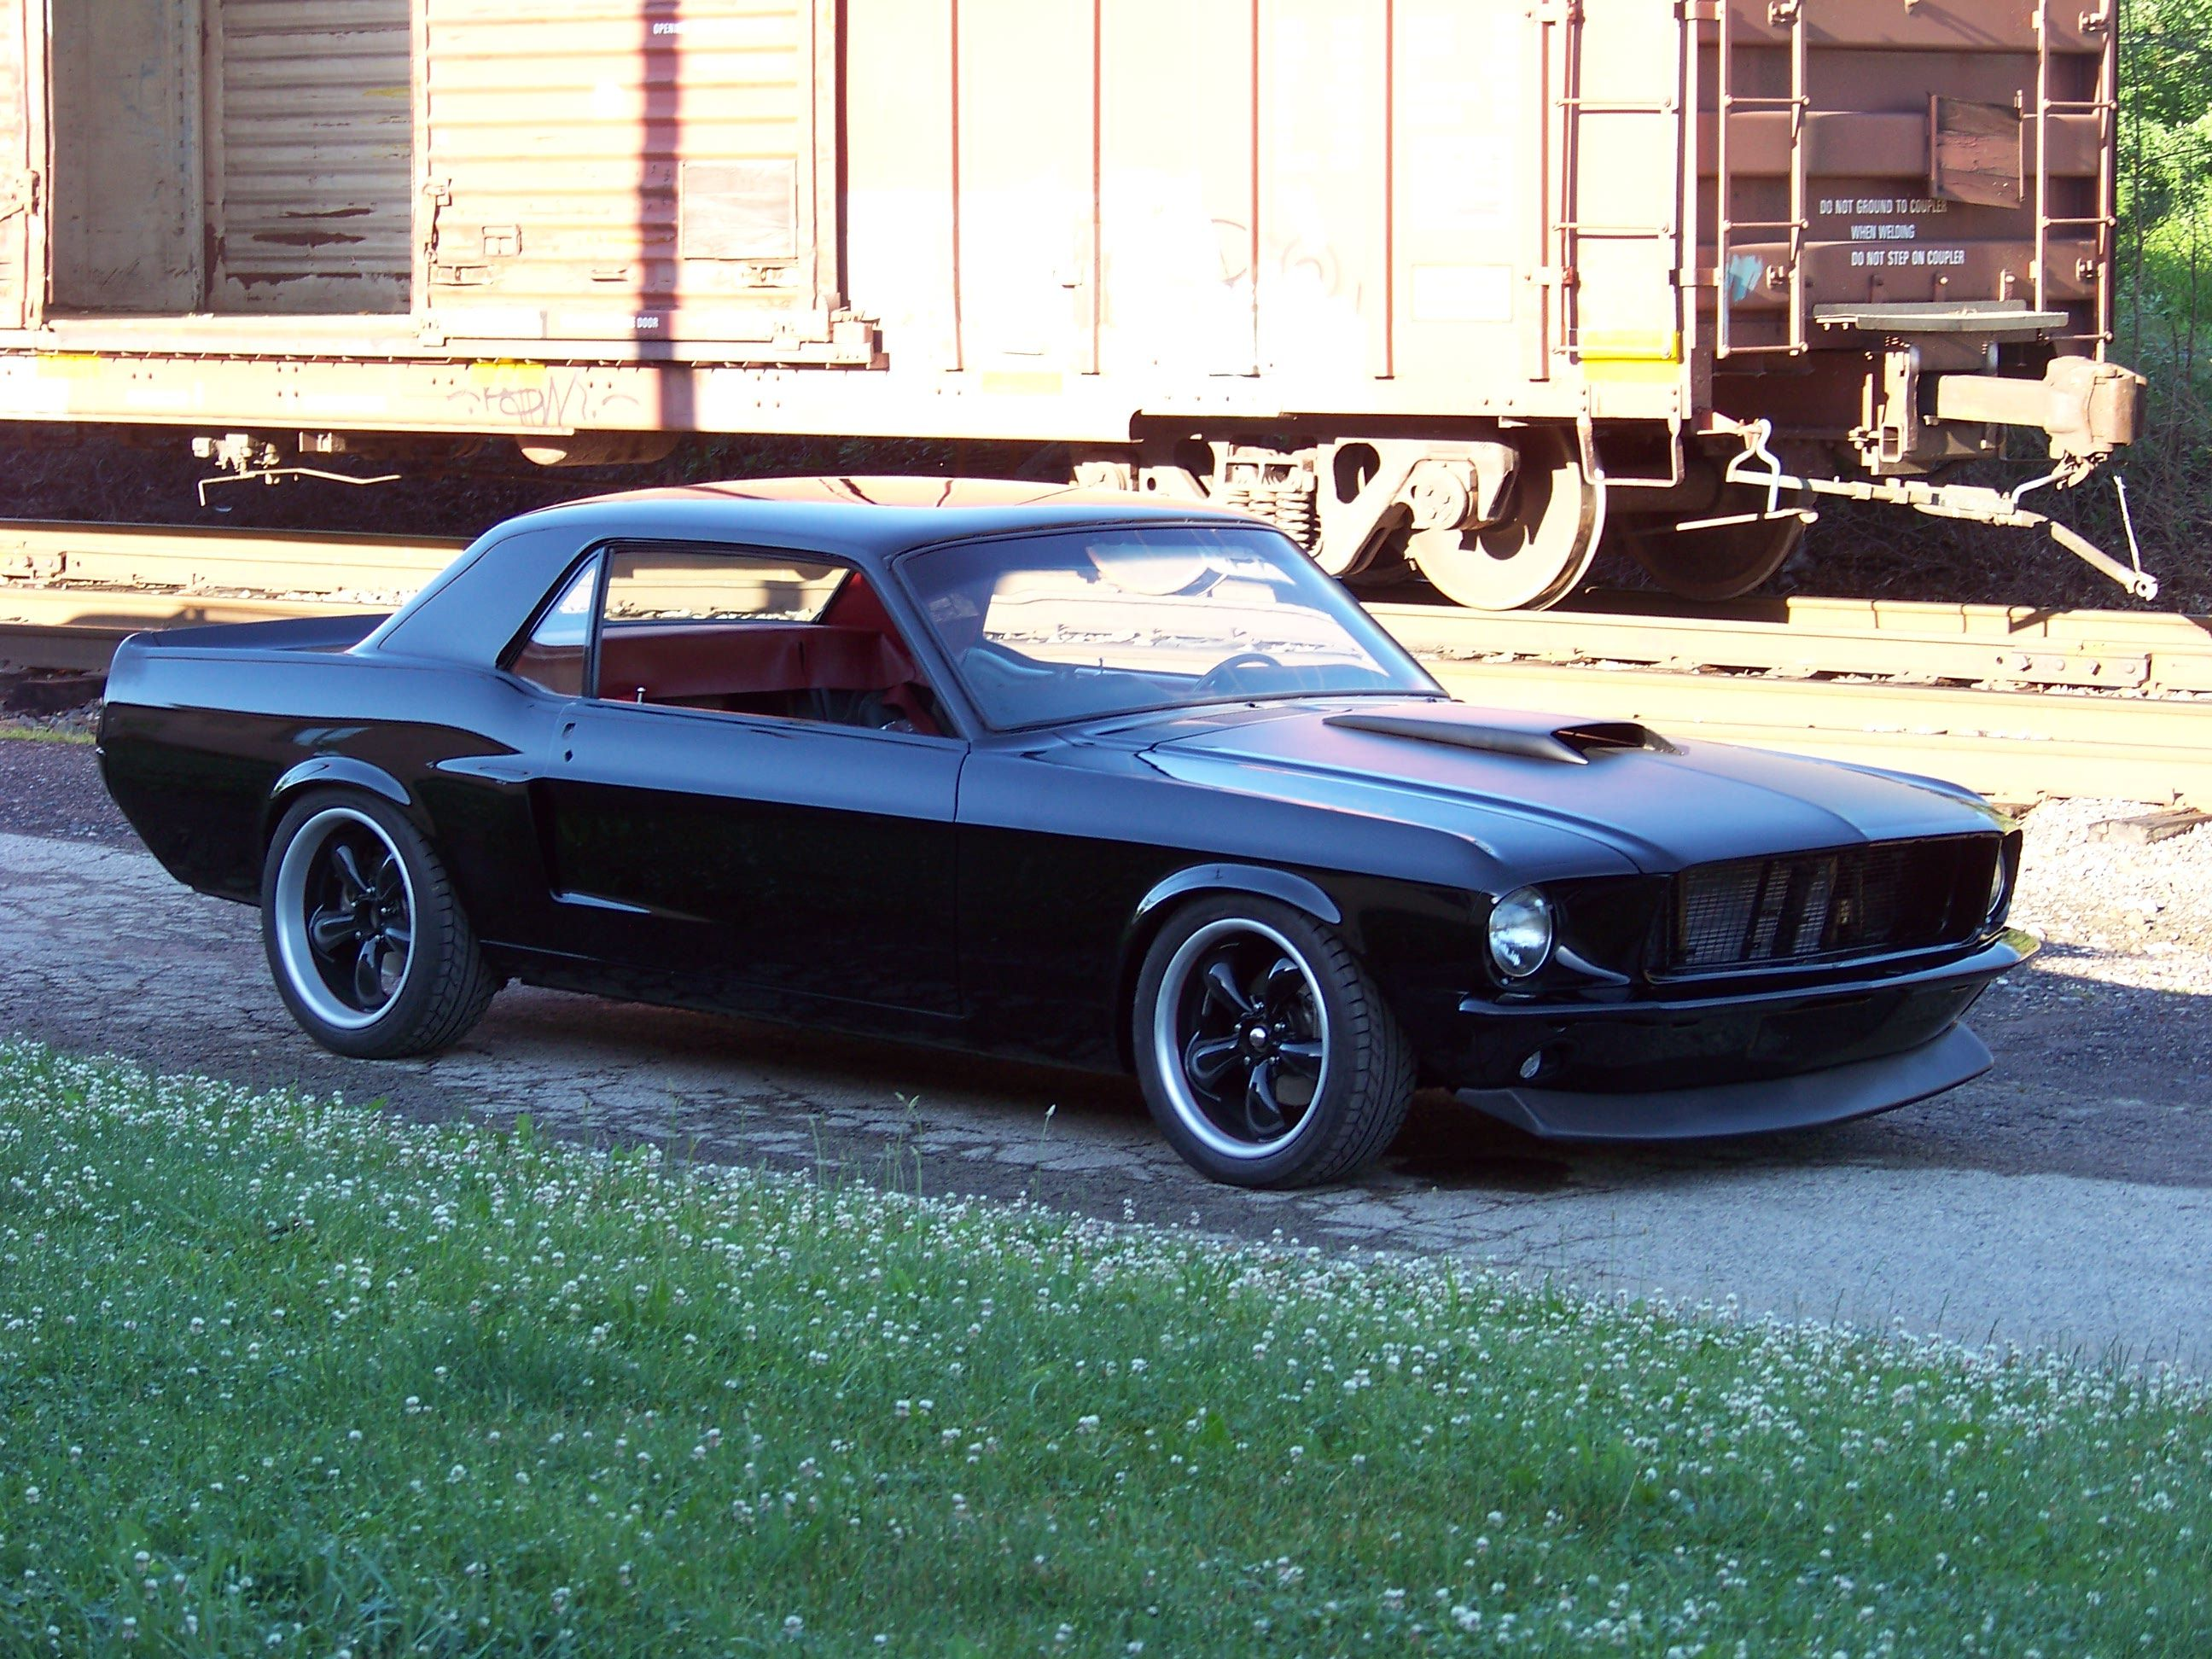 1968 Ford Mustang Coupe Bent Metal Customs Ford Mustang Coupe Mustang Coupe Ford Mustang Shelby Gt